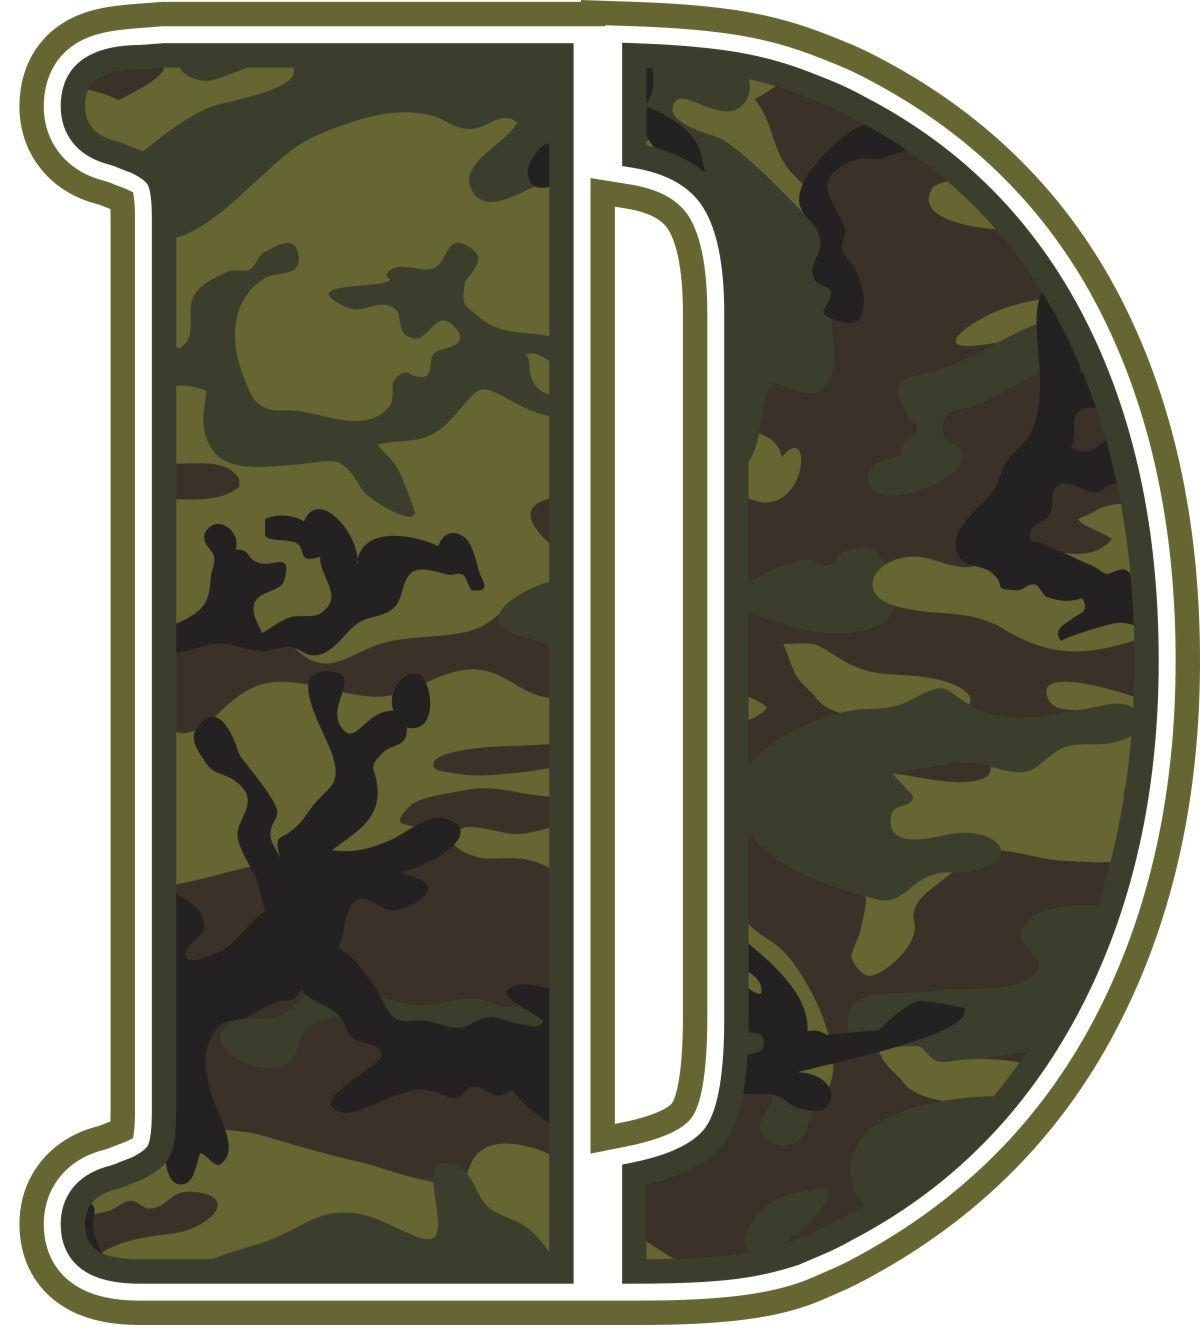 Green Camo Wall Letters | Potty Training Concepts Throughout Camouflage Wall Art (View 12 of 20)